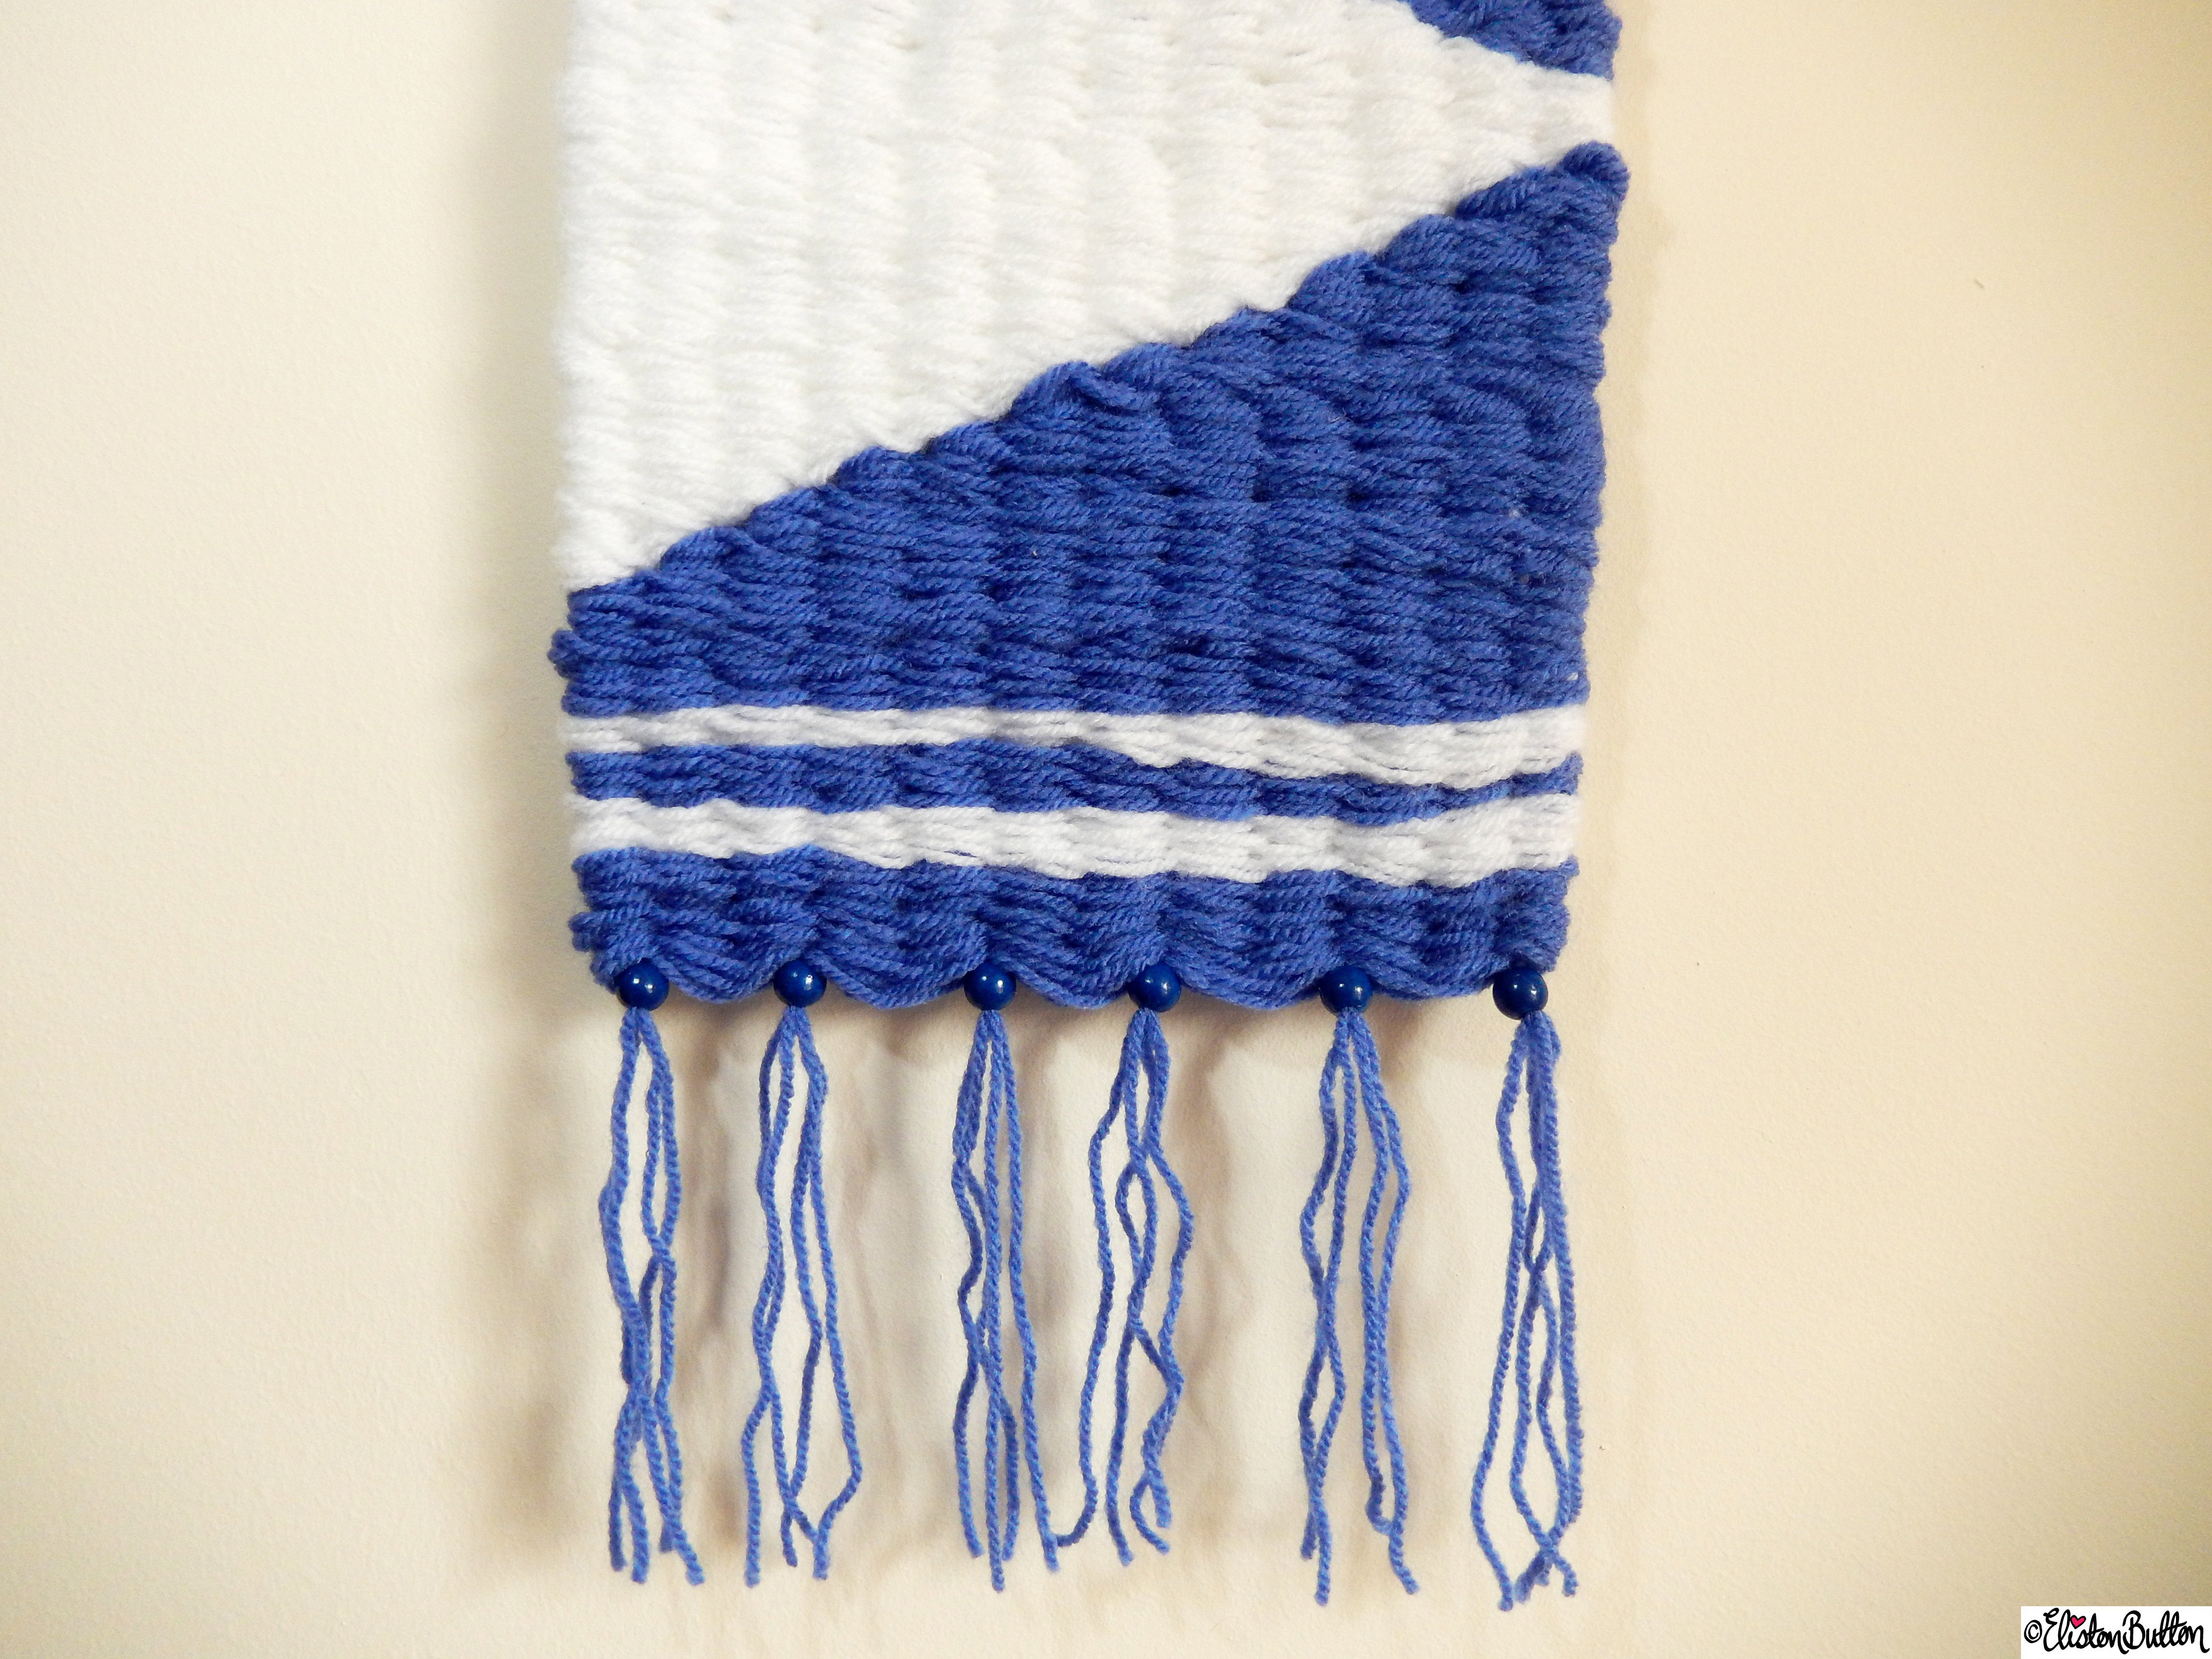 Nautical Inspired Blue and White Woven Wall Hanging Bottom Section Tassels - Create 28 - No. 7&8 - Woven Wall Hangings at www.elistonbutton.com - Eliston Button - That Crafty Kid – Art, Design, Craft & Adventure.